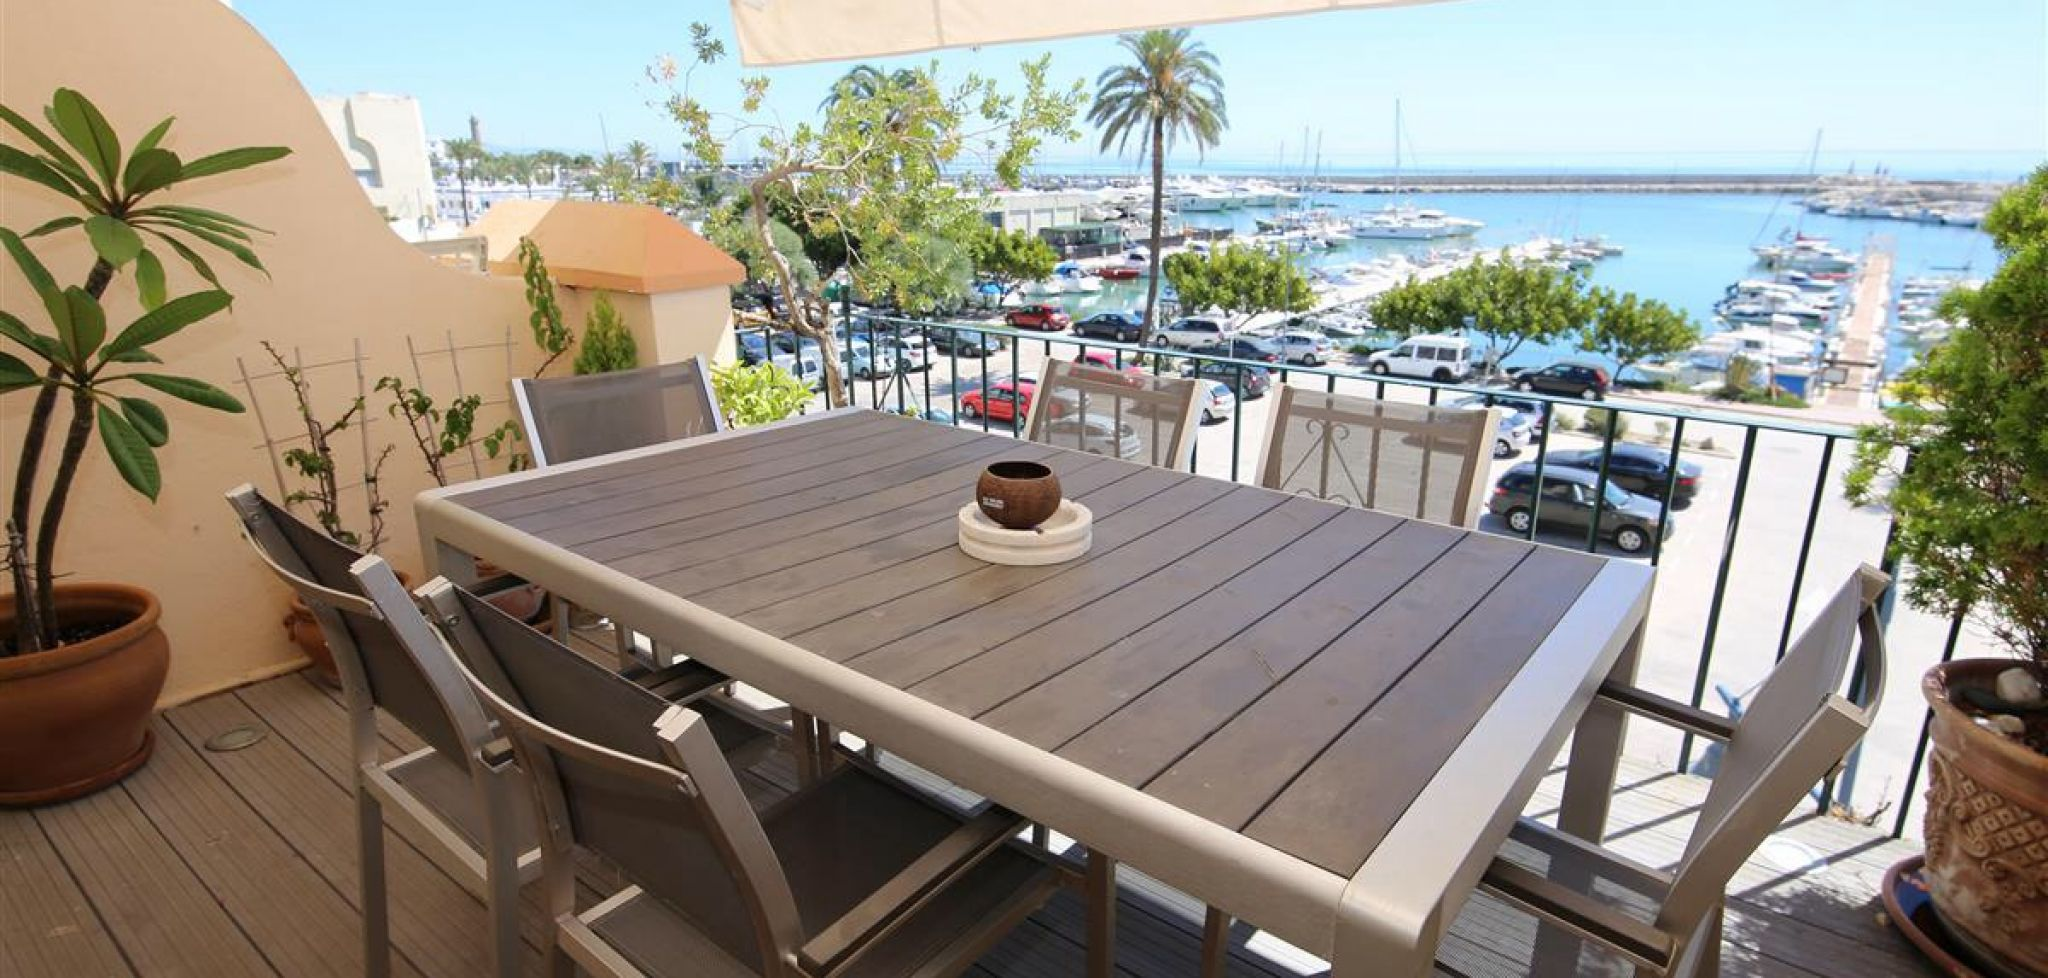 Front line beach townhouse overlooking the marina in Estepona Port